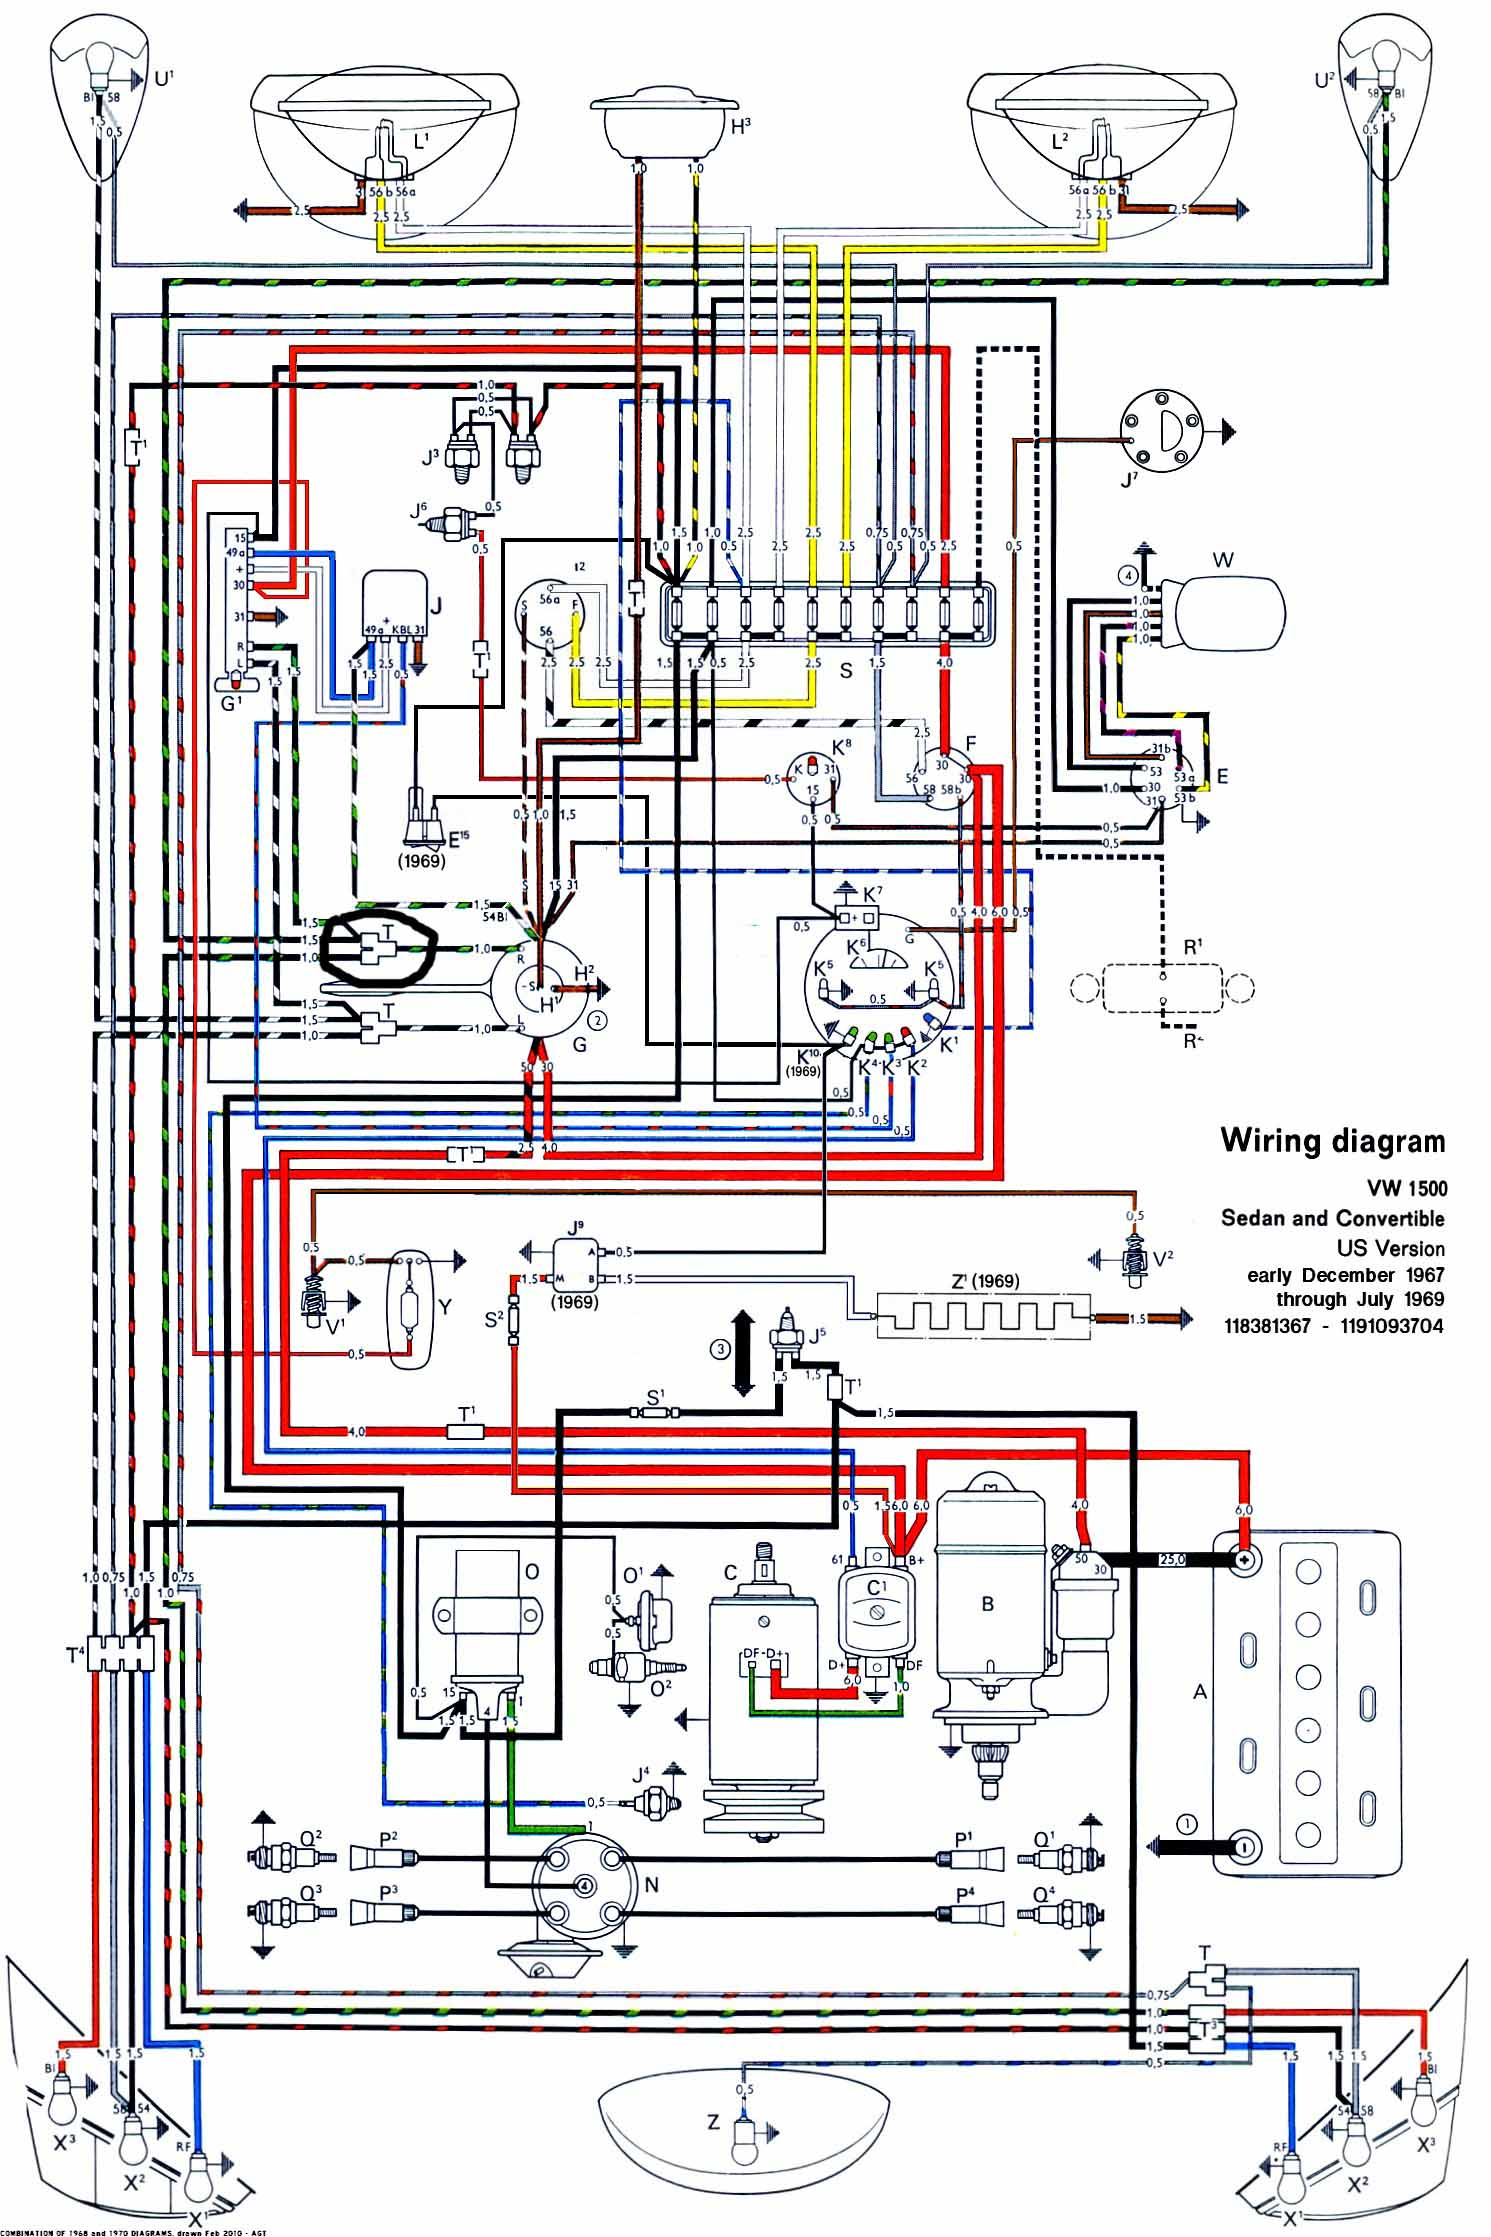 wiring diagram for 1971 vw beetle the wiring diagram 1967 vw bug turn  signal wiring diagram